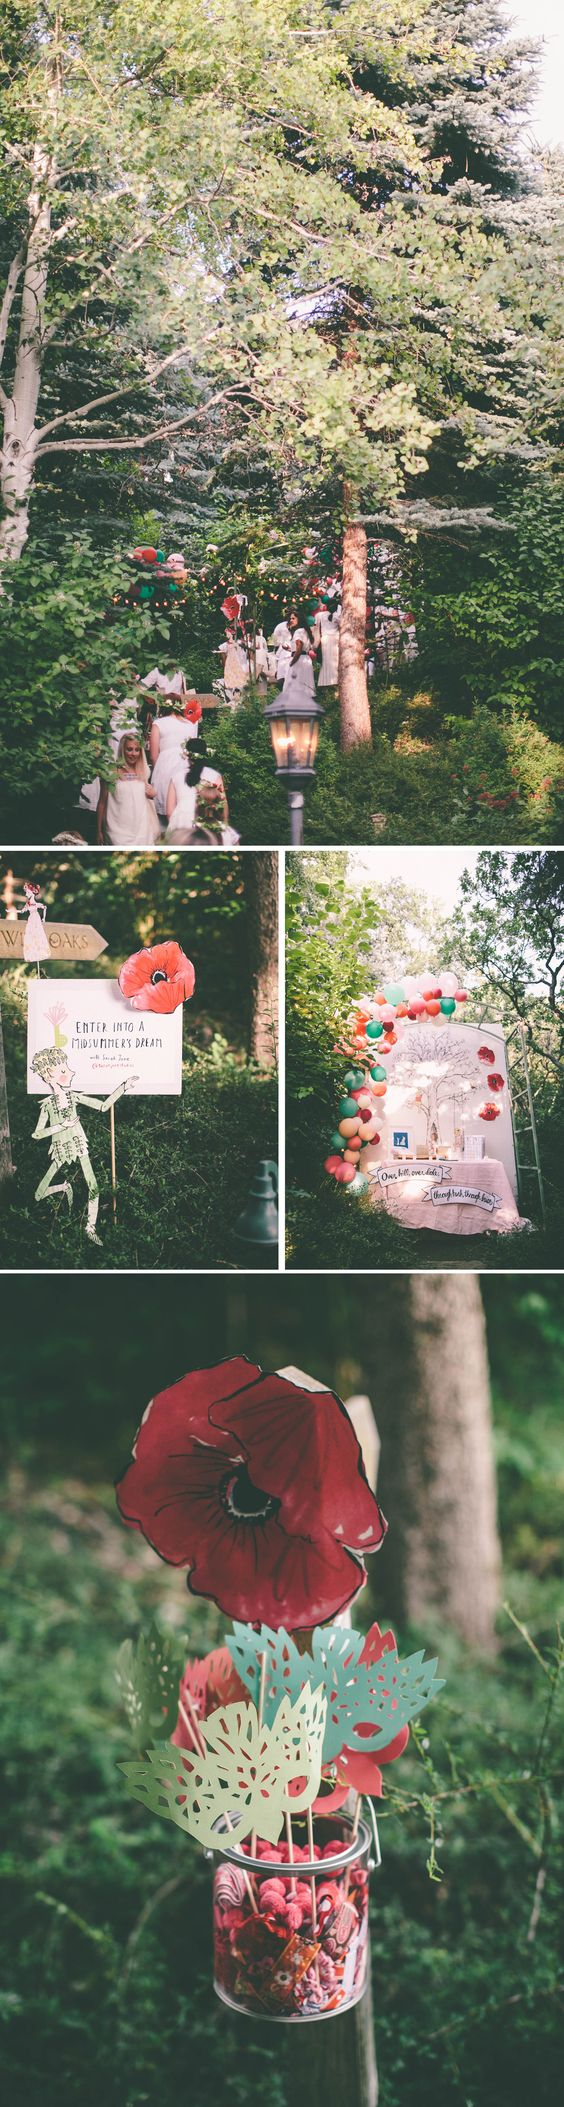 A Midsummer Mingle: A Midsummer's Dream with SarahJane Studios